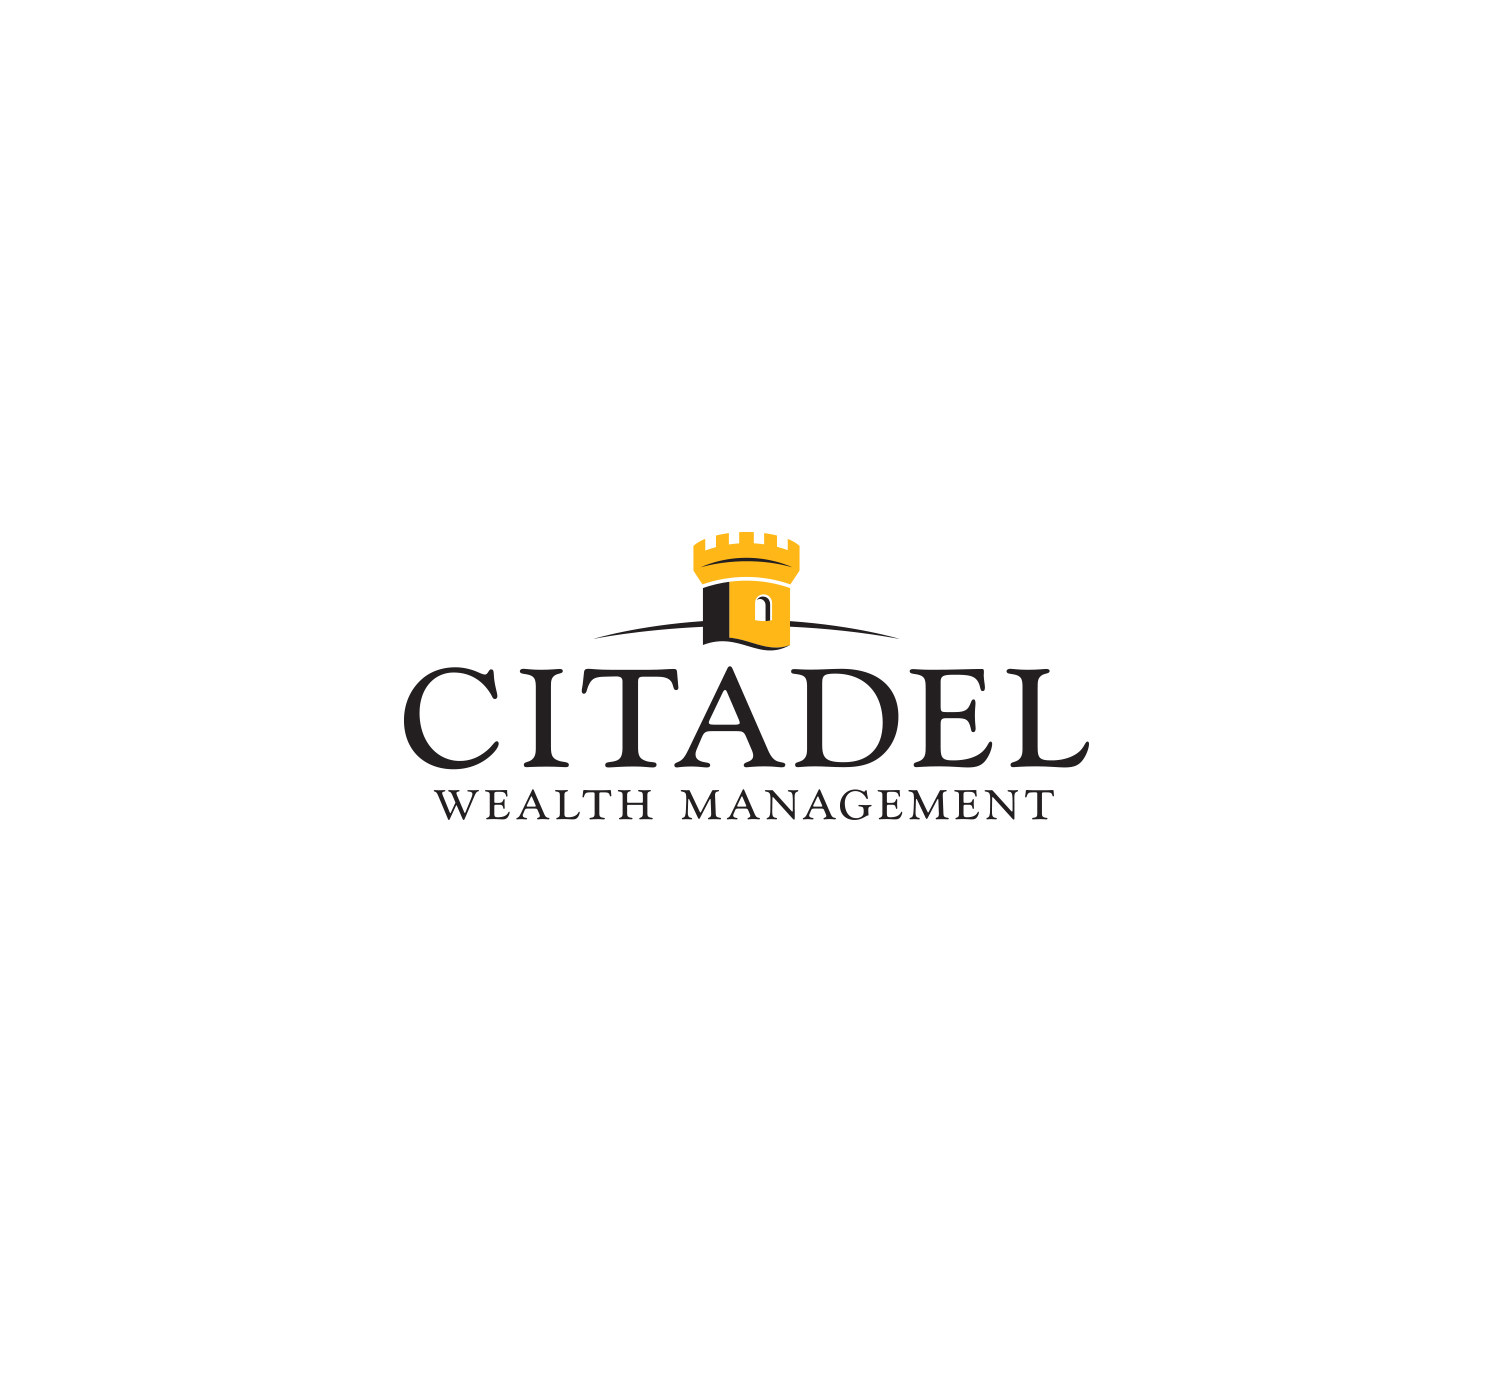 Citadel Wealth Management